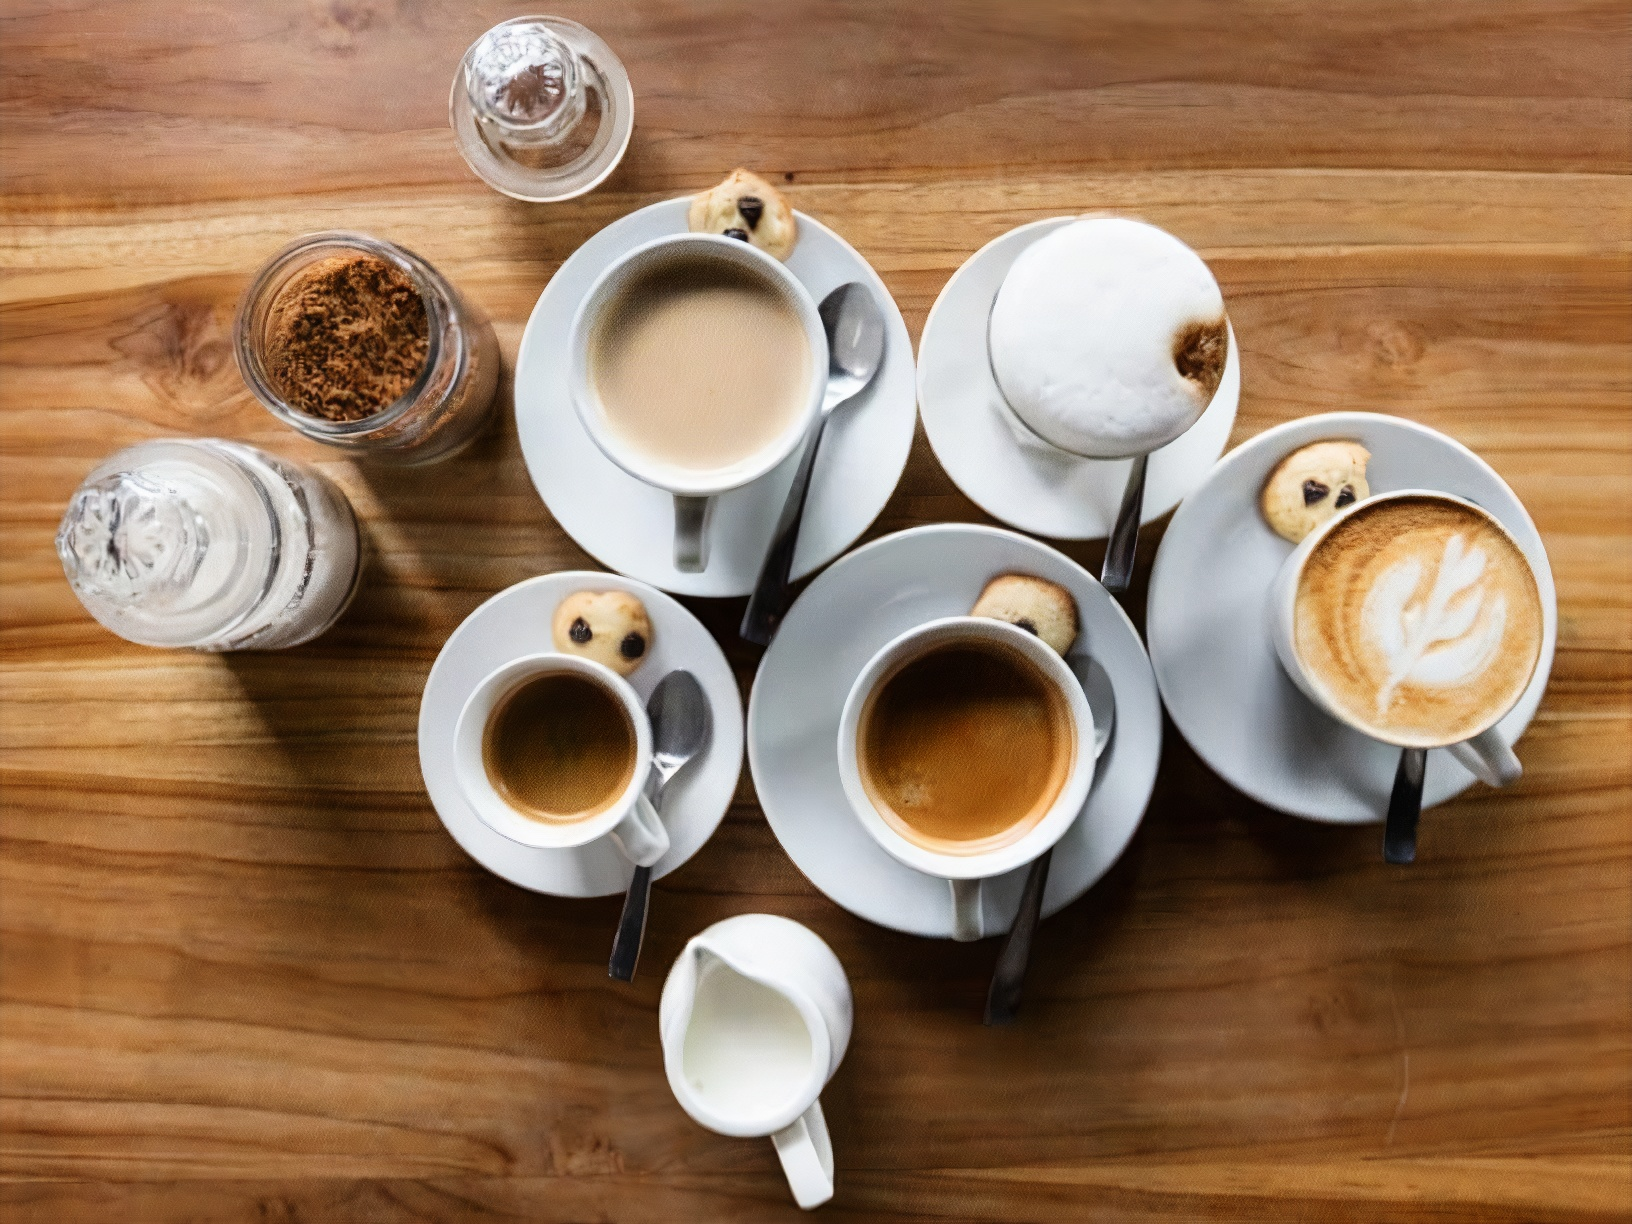 cups of various coffee beverages placed side by side